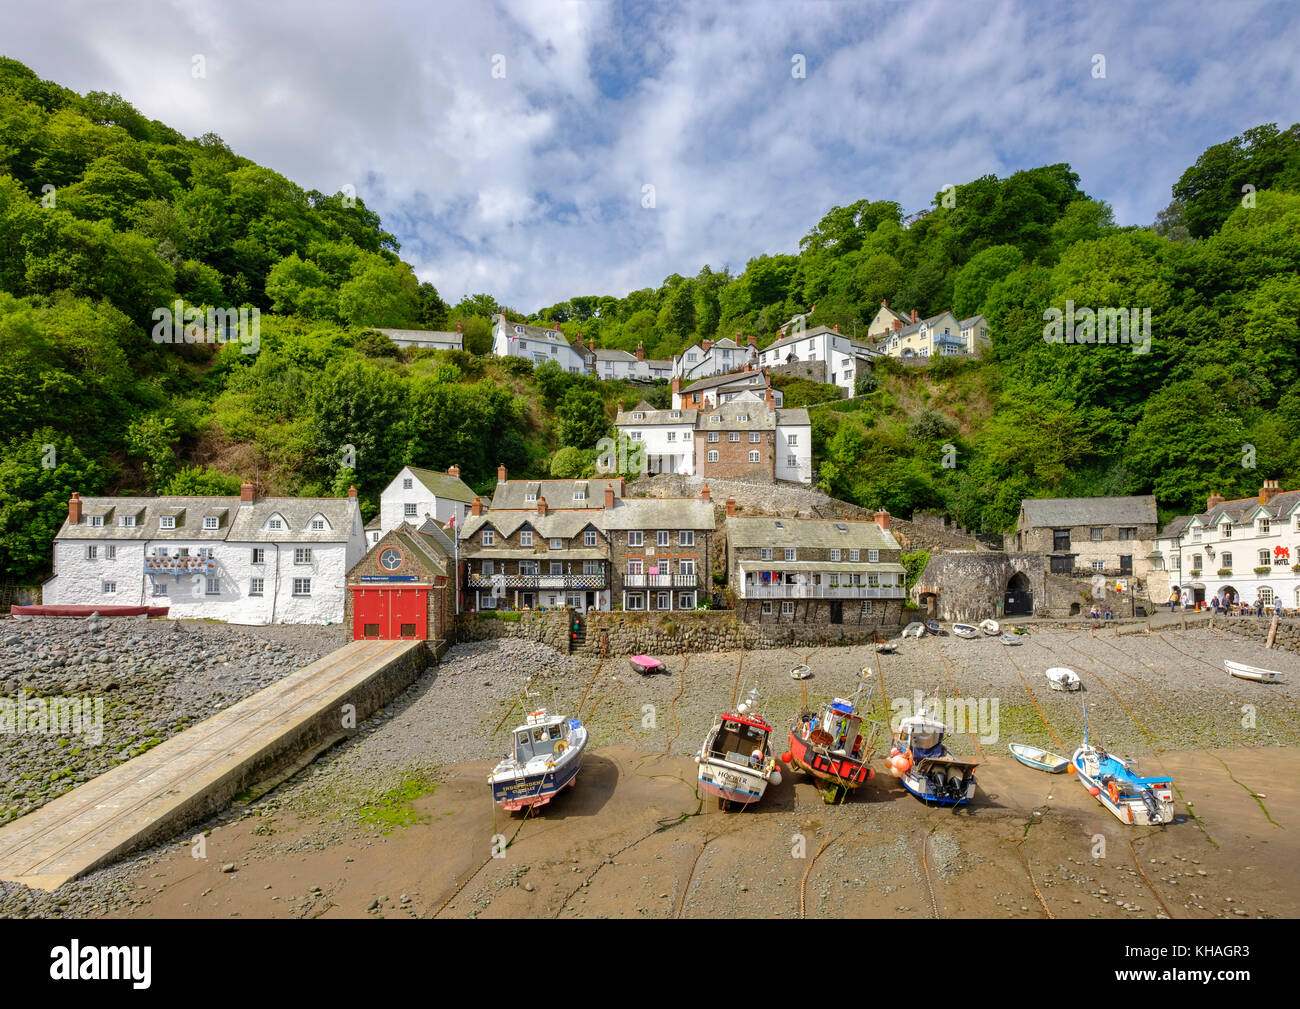 Port de pêche, Clovelly, Devon, Angleterre, Grande-Bretagne Photo Stock